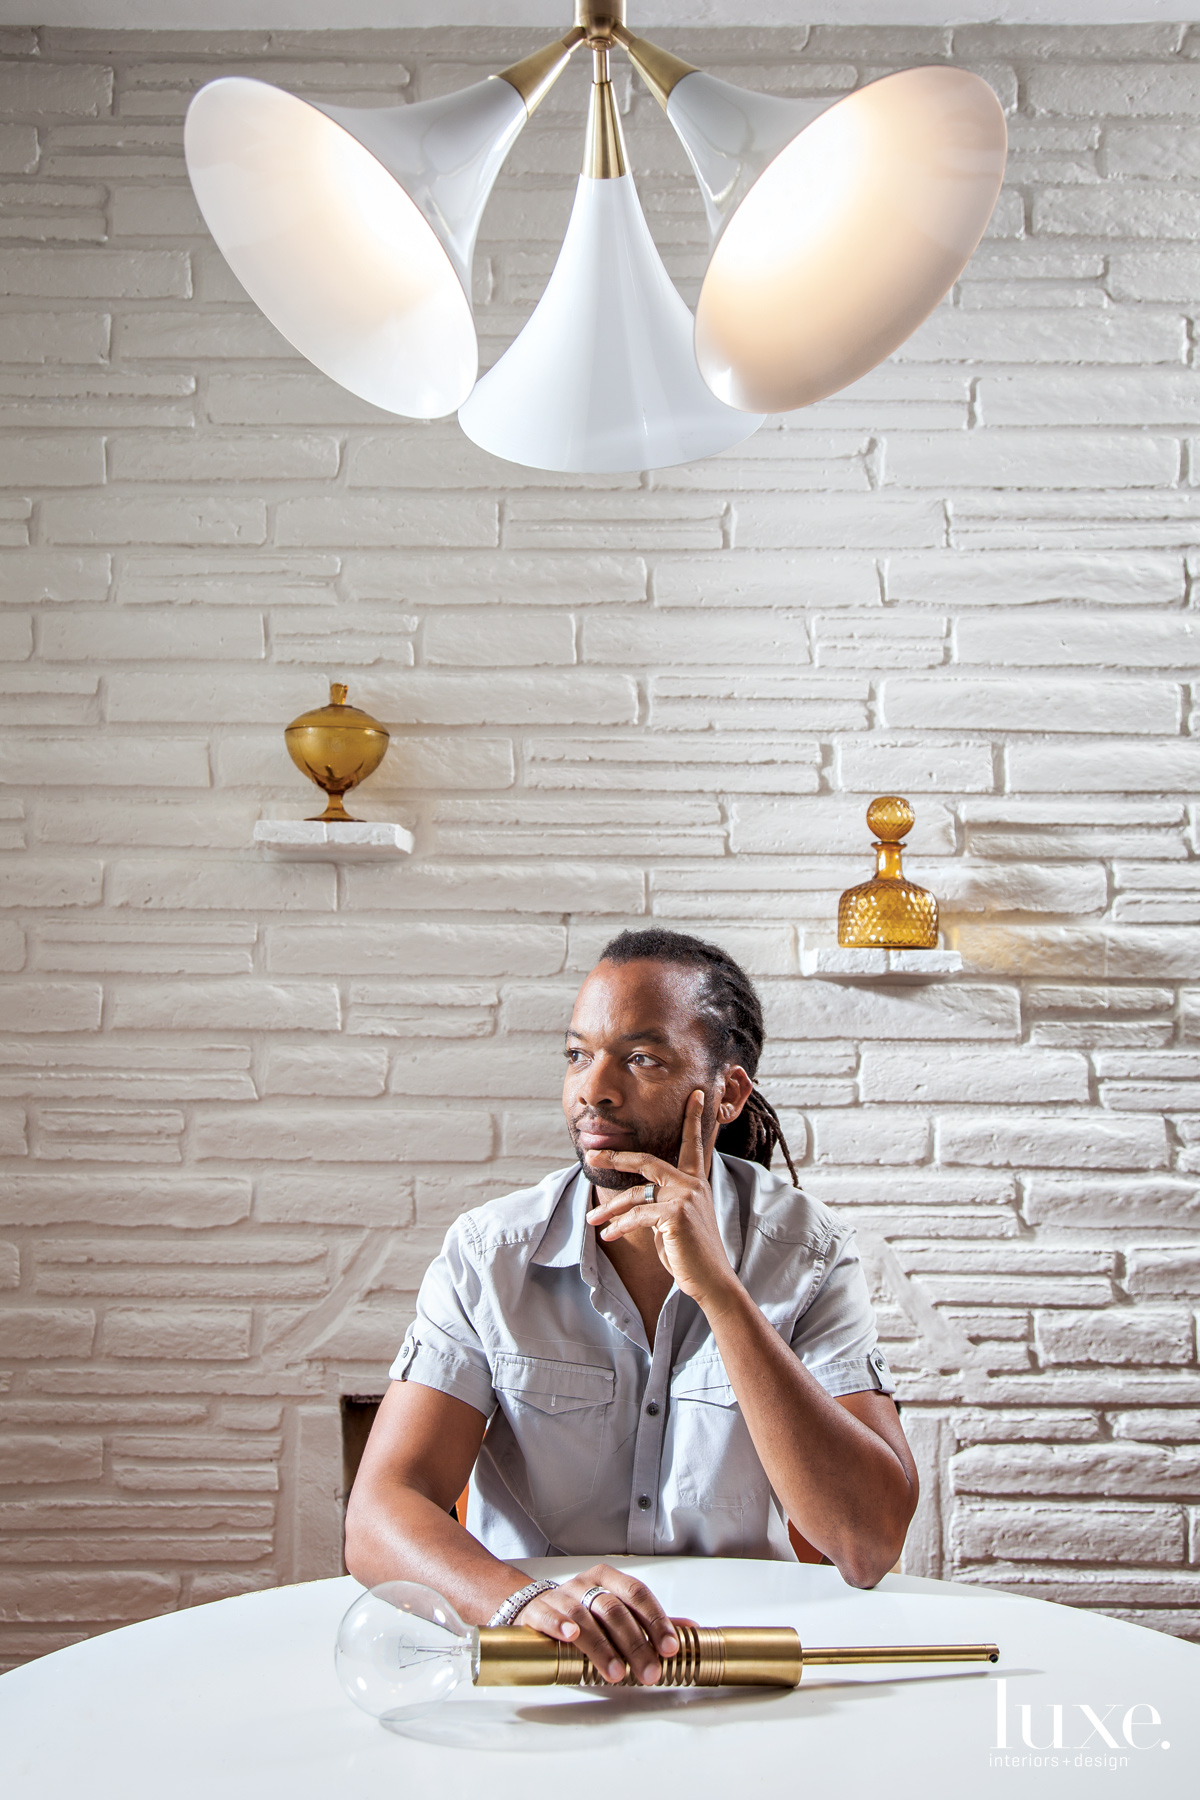 Lighting designer Raymond Barberousse sits among some of his creations.